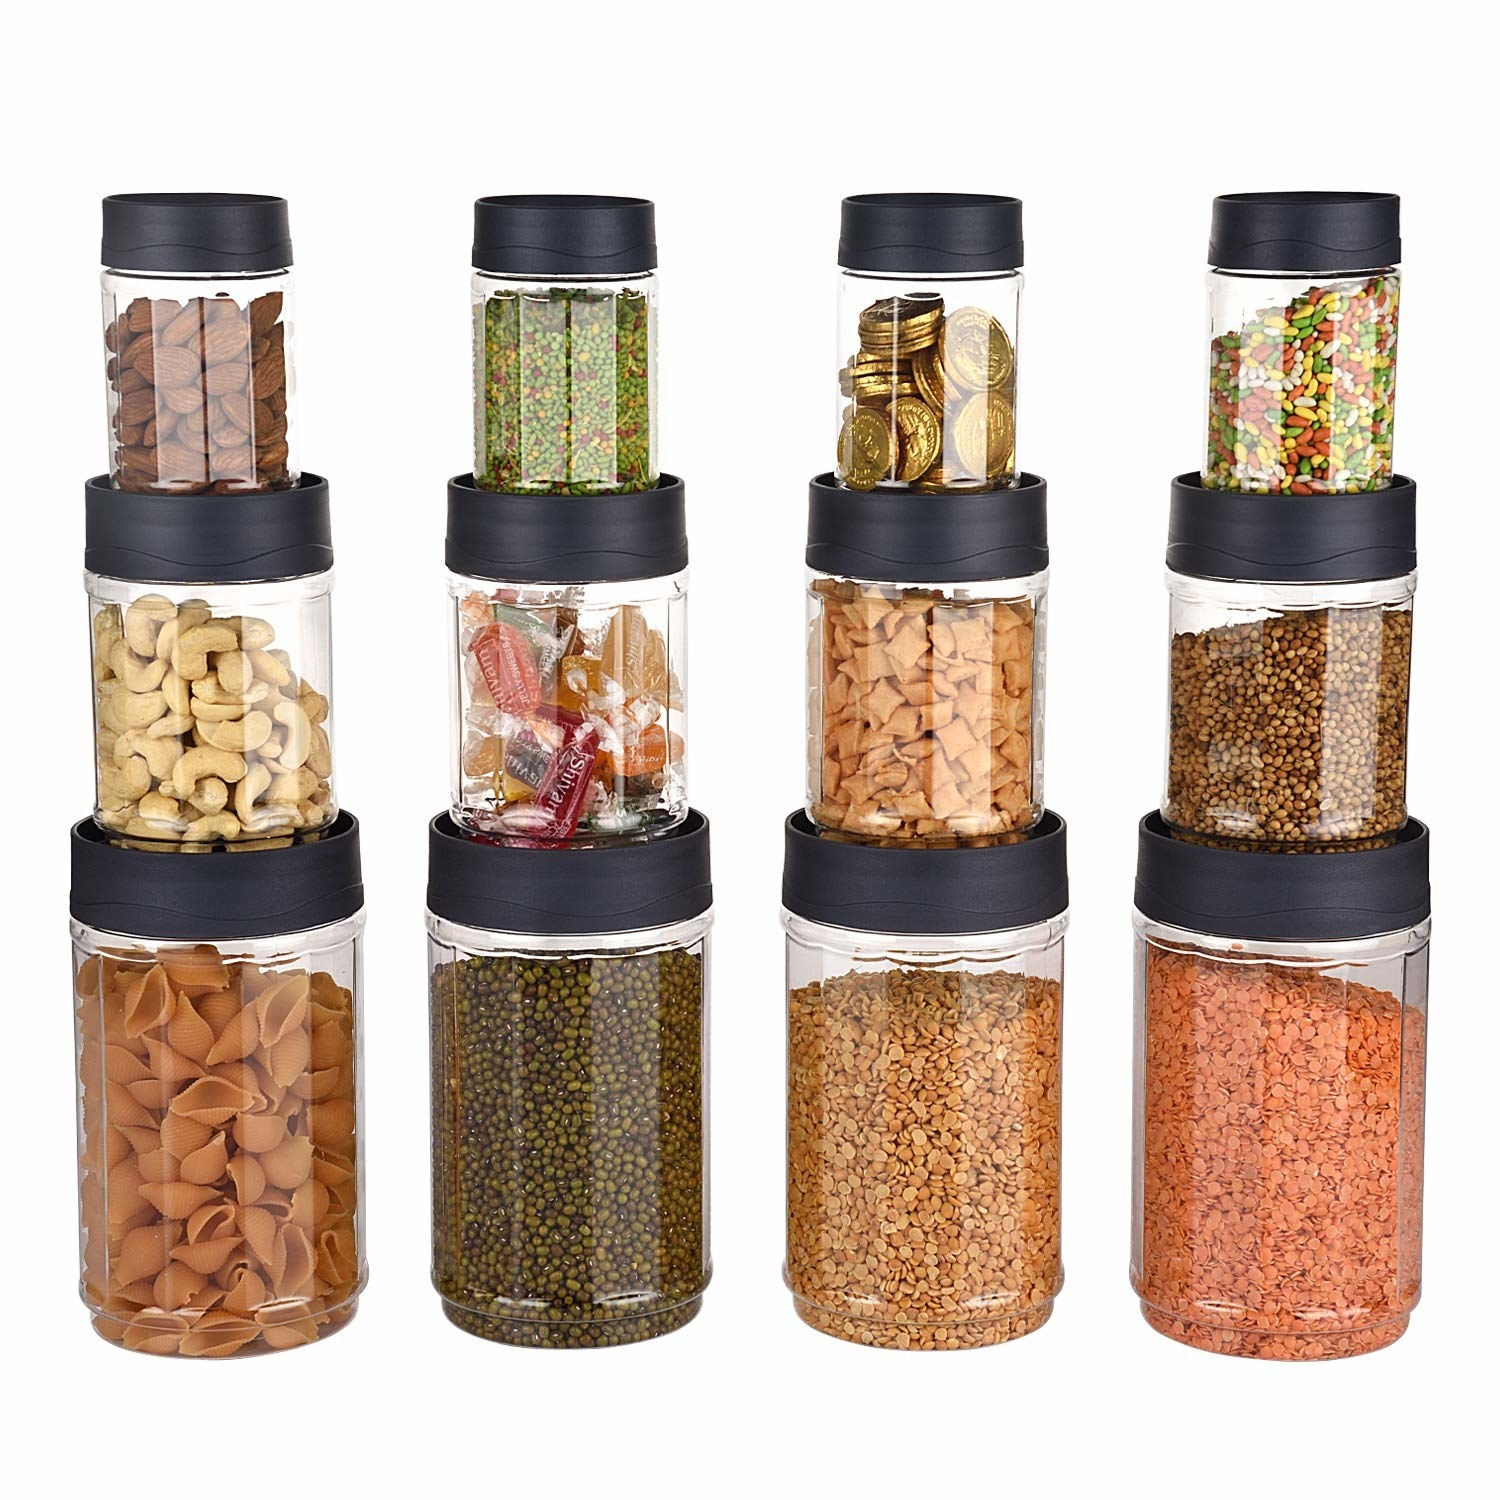 A set of stackable containers